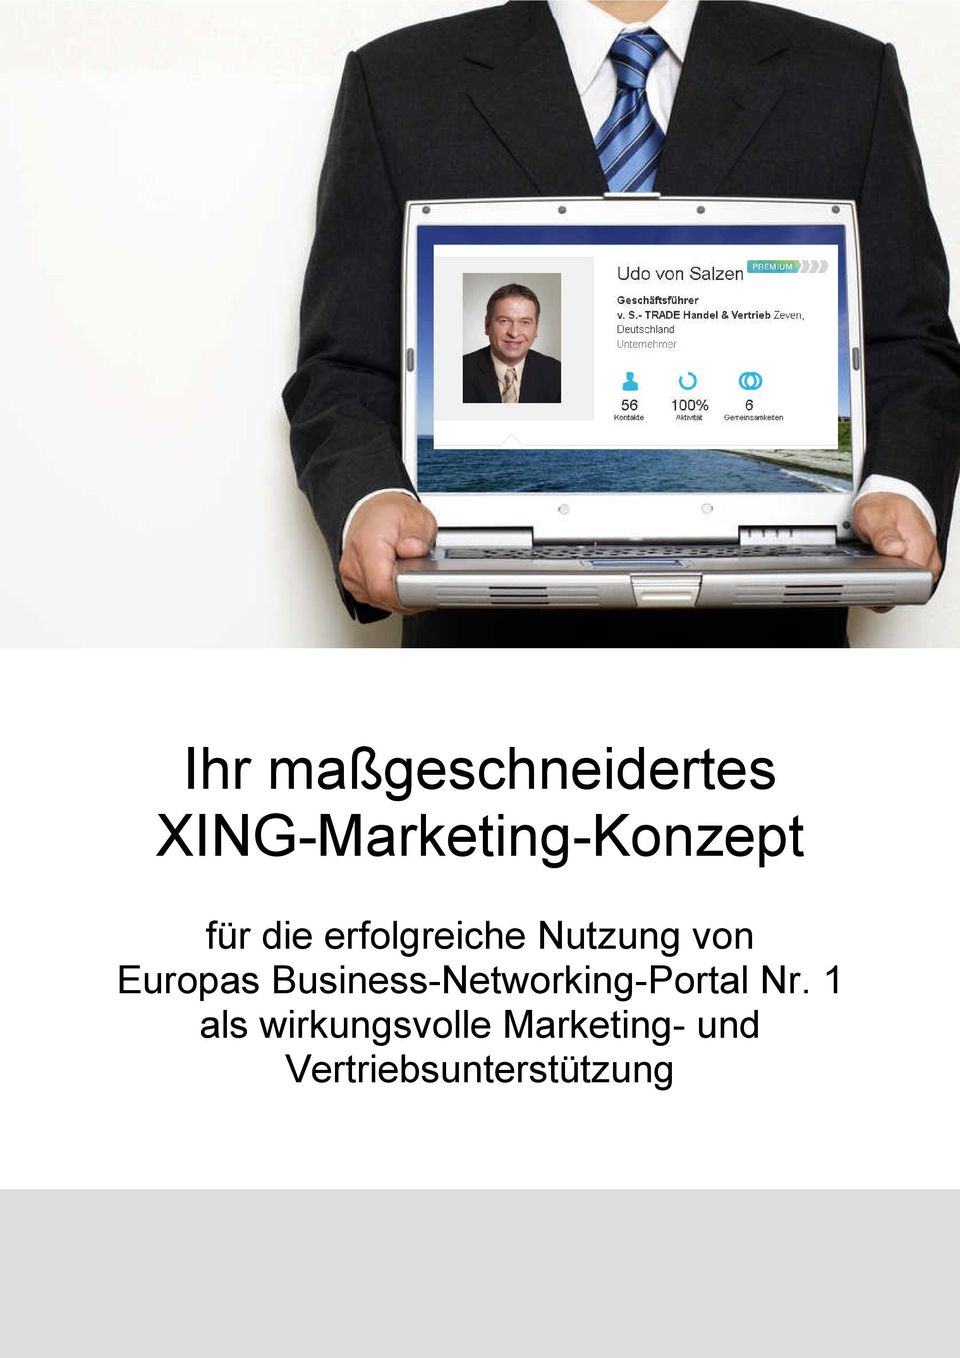 Business-Networking-Portal Nr.